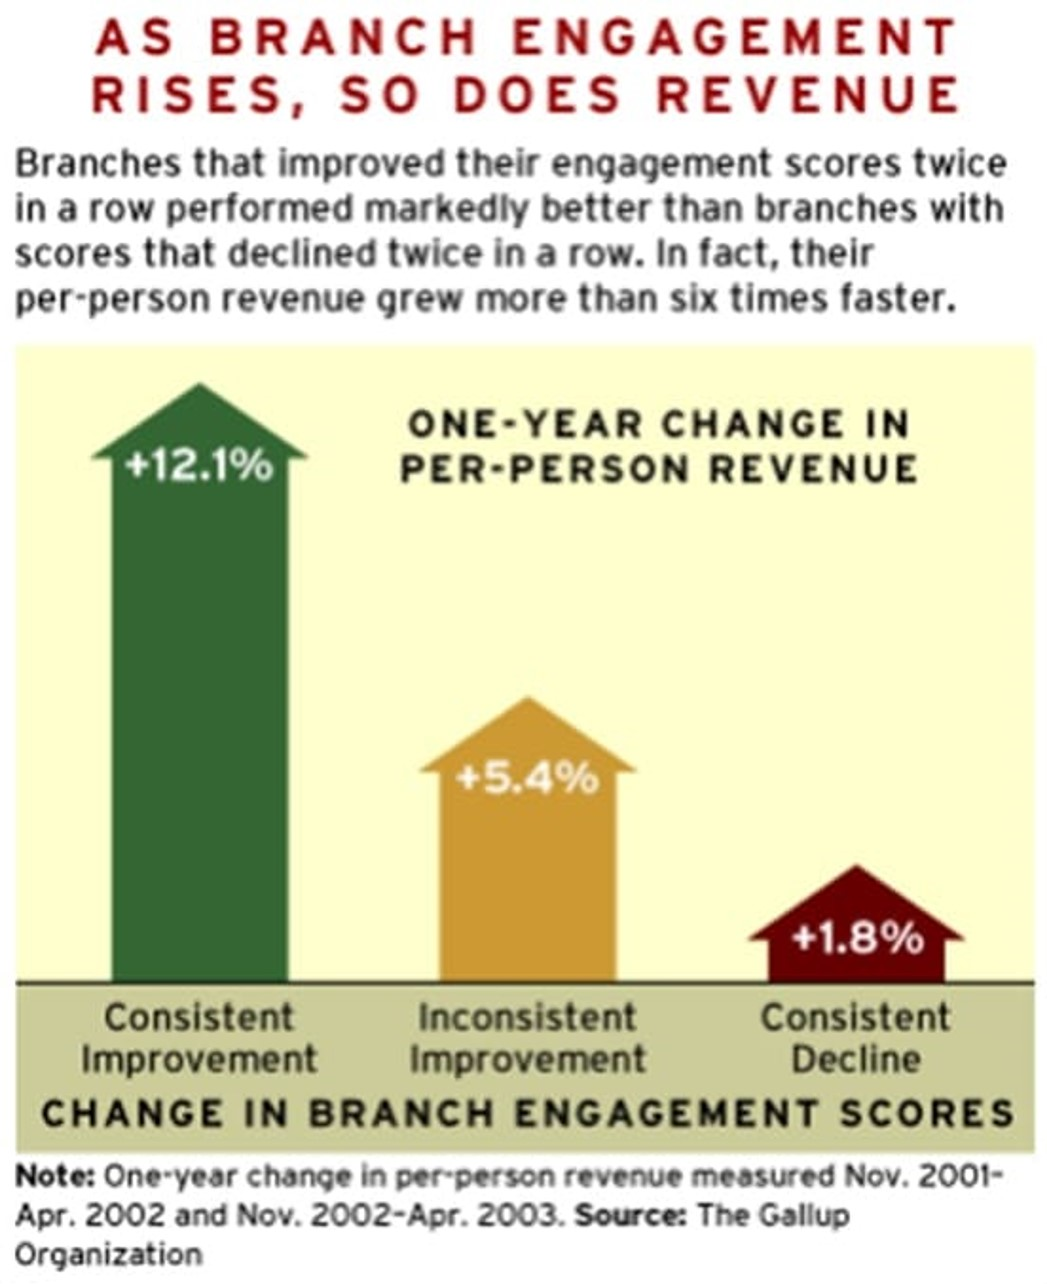 Employee Centric Culture - Branch Engagement